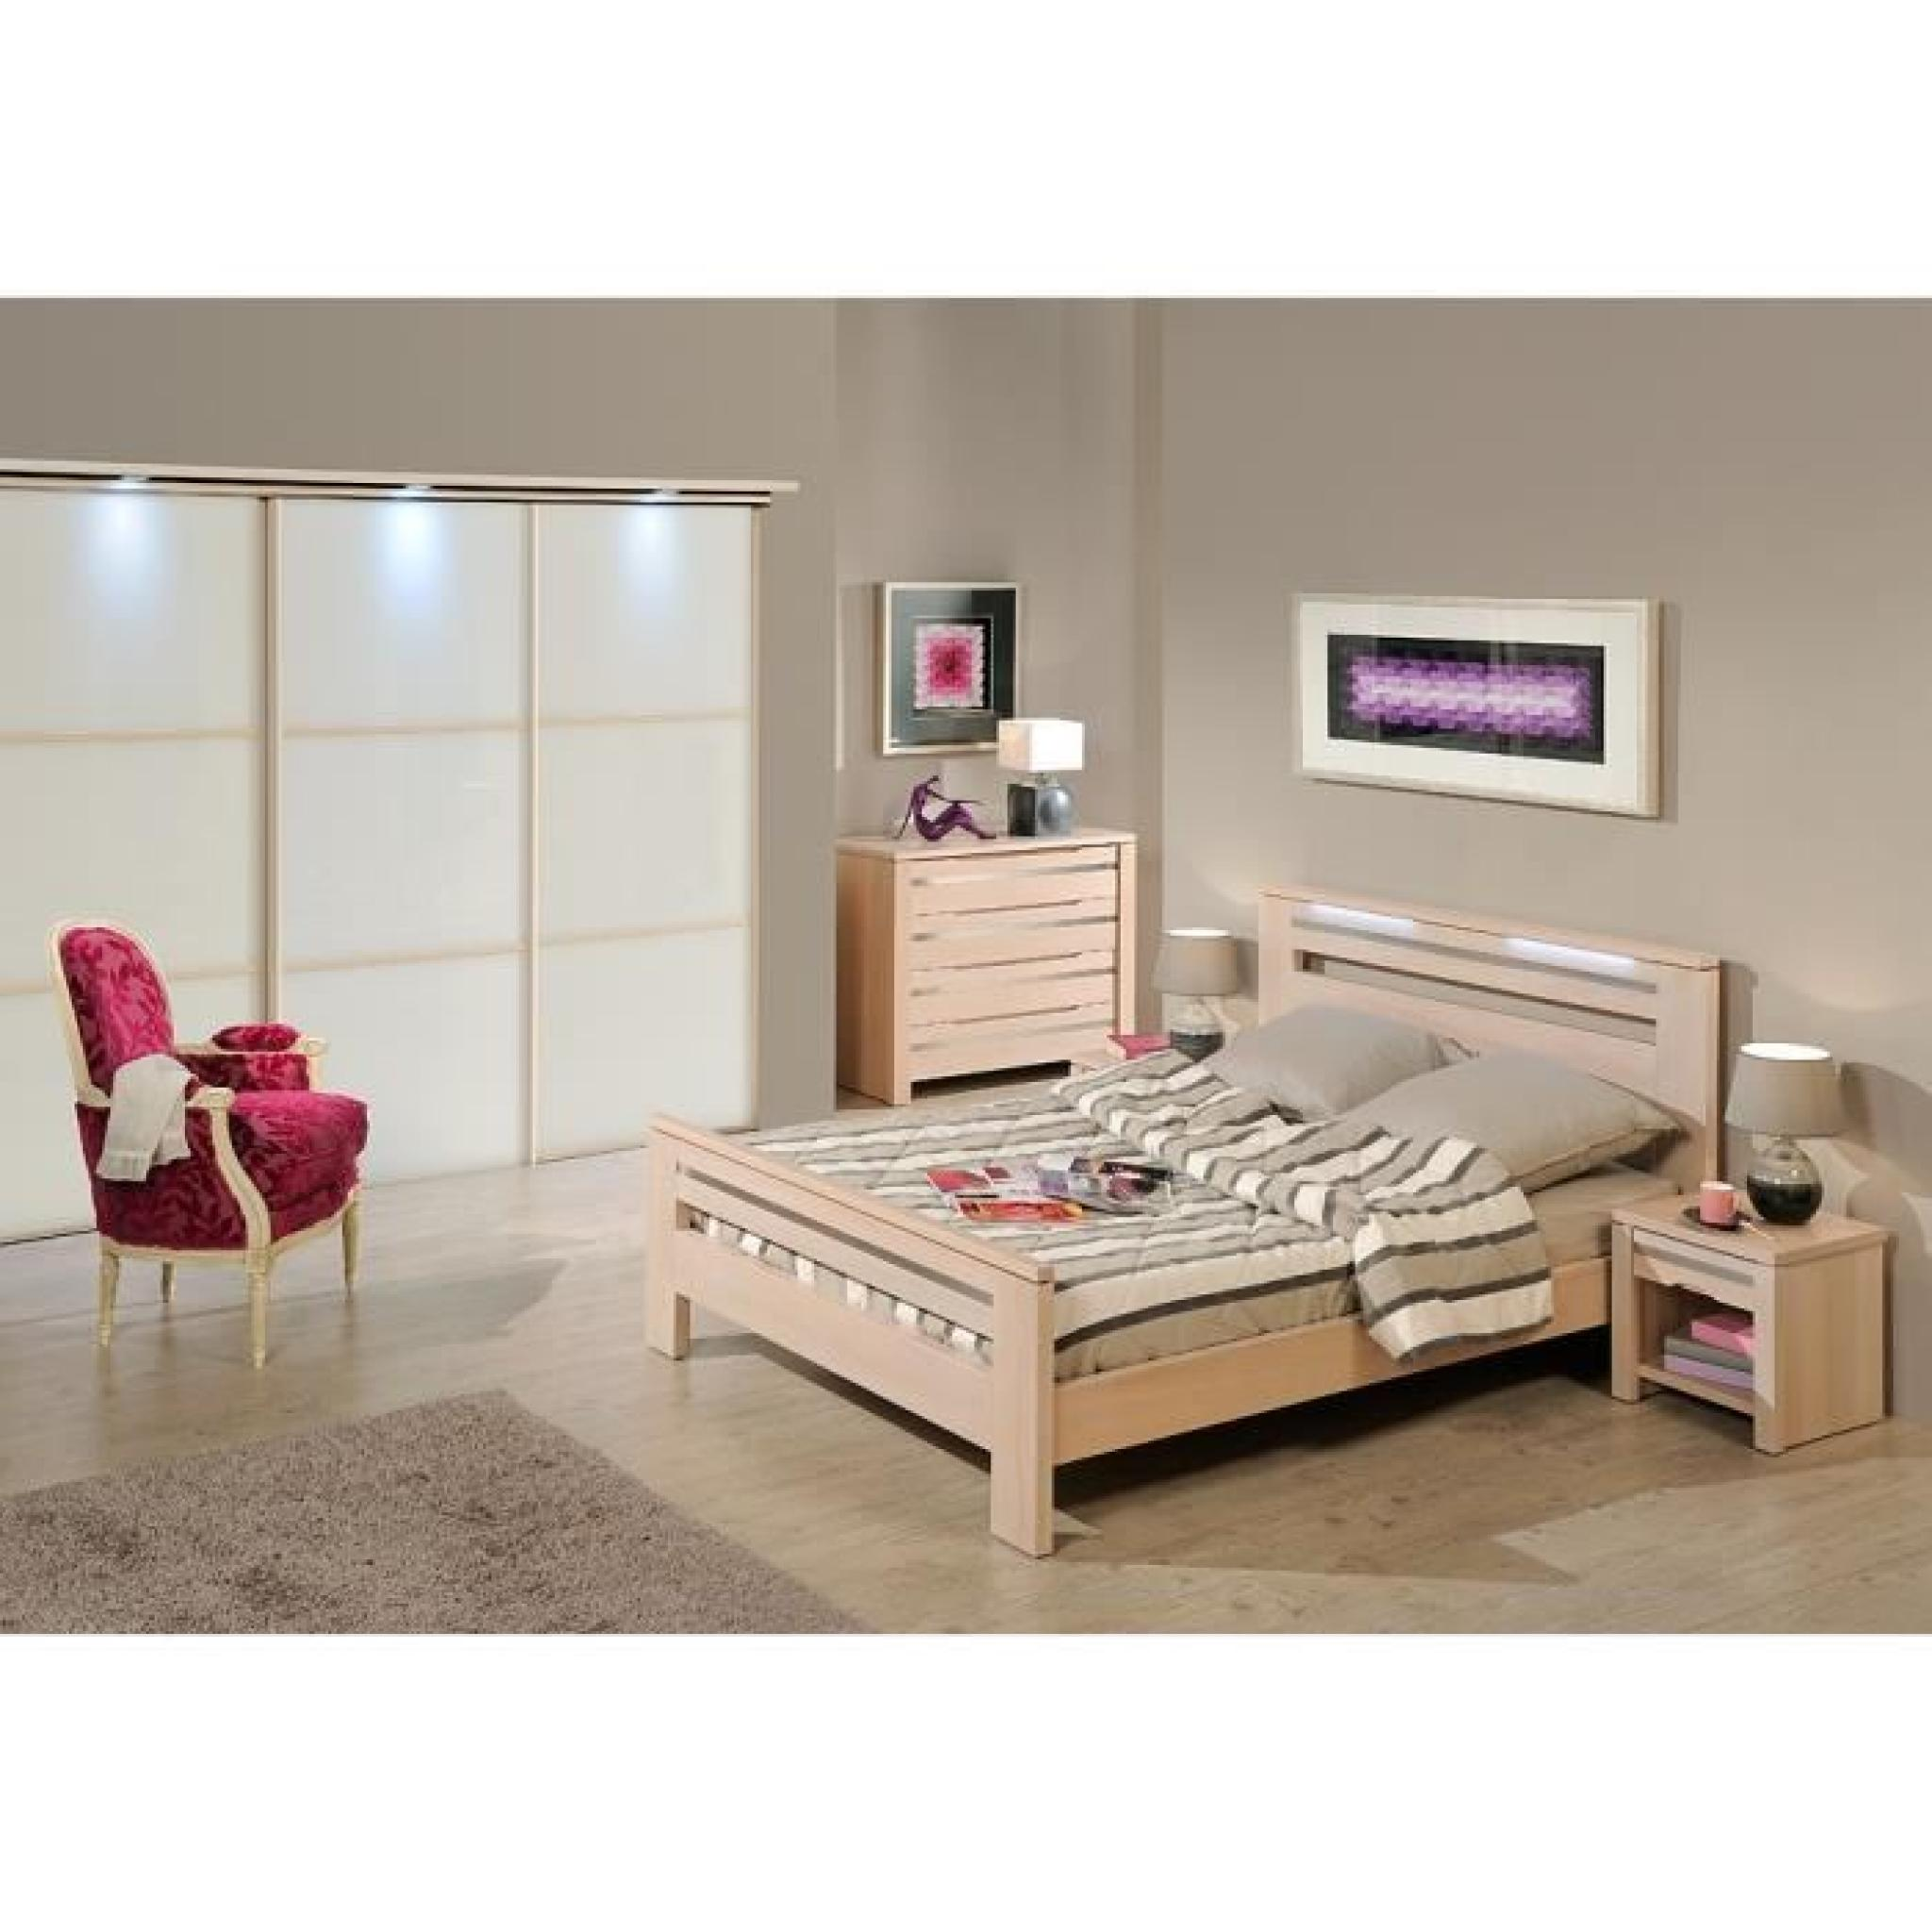 lit contemporain opale orme orme weng 160 x 200 achat vente lit pas cher couleur et. Black Bedroom Furniture Sets. Home Design Ideas